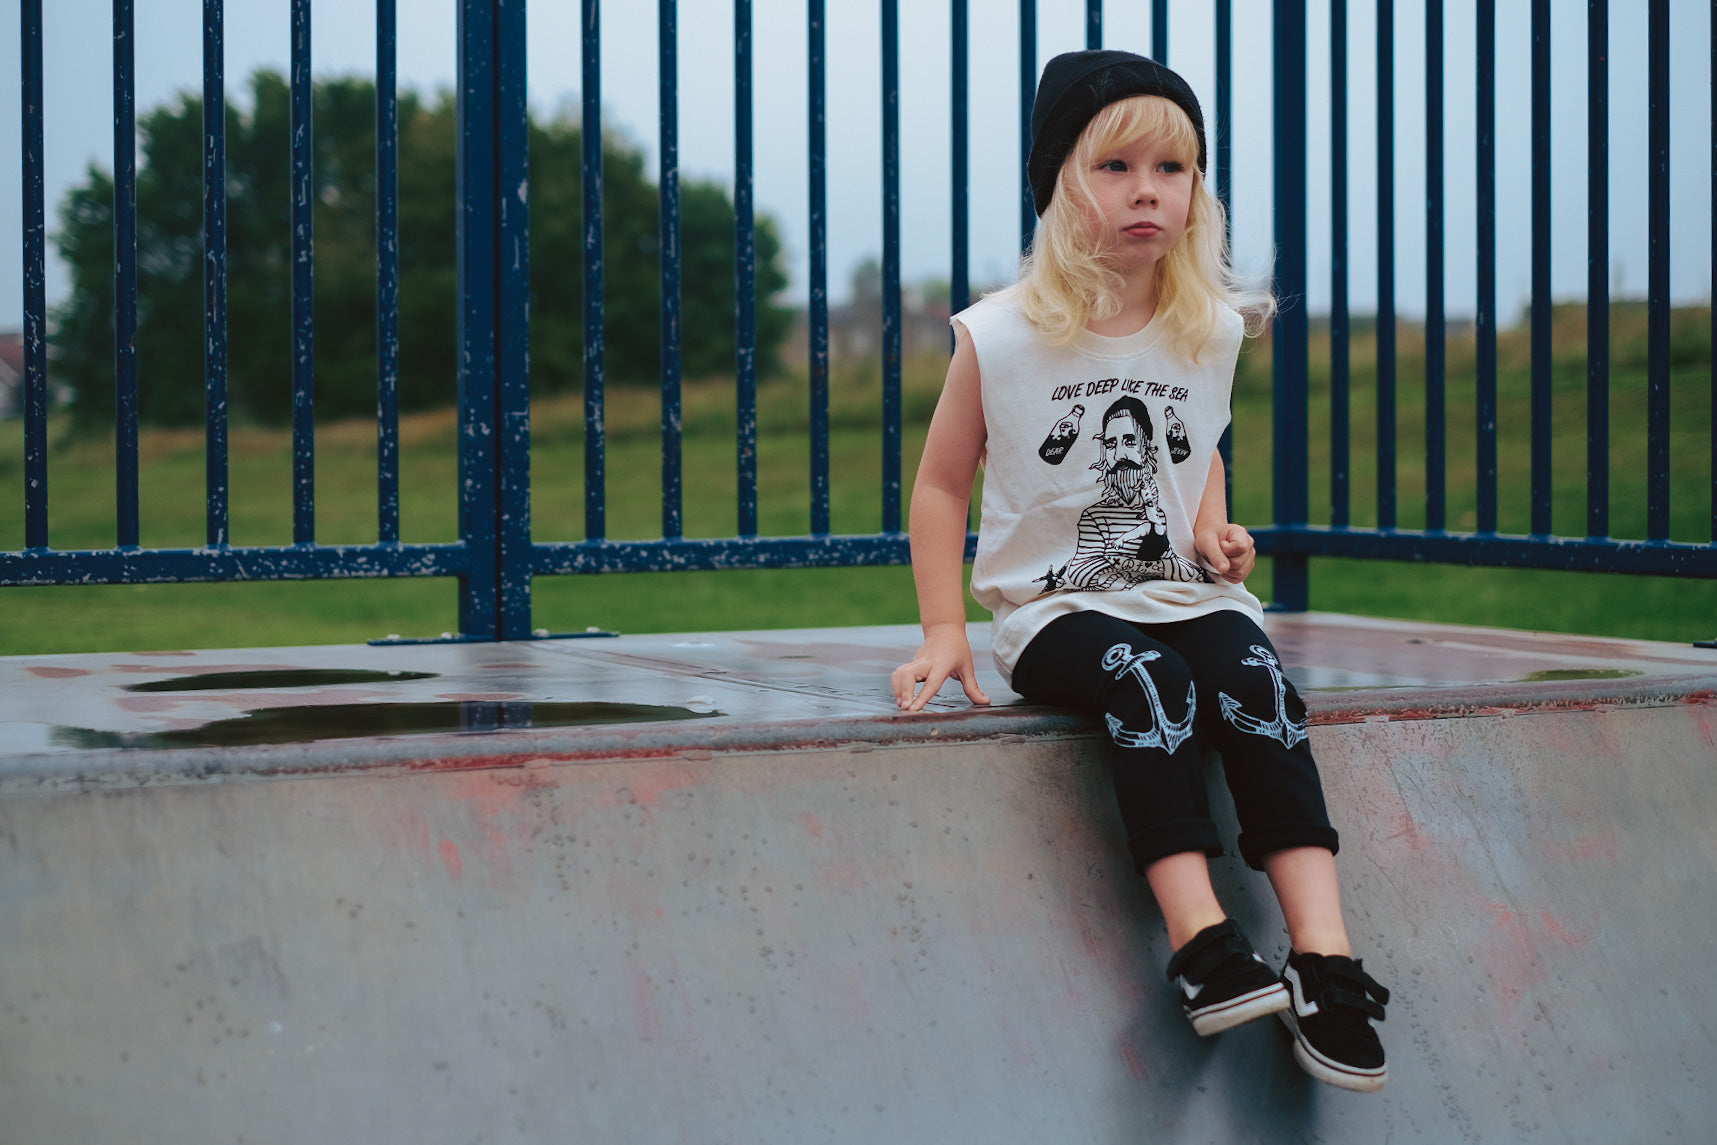 Skate clothes kids